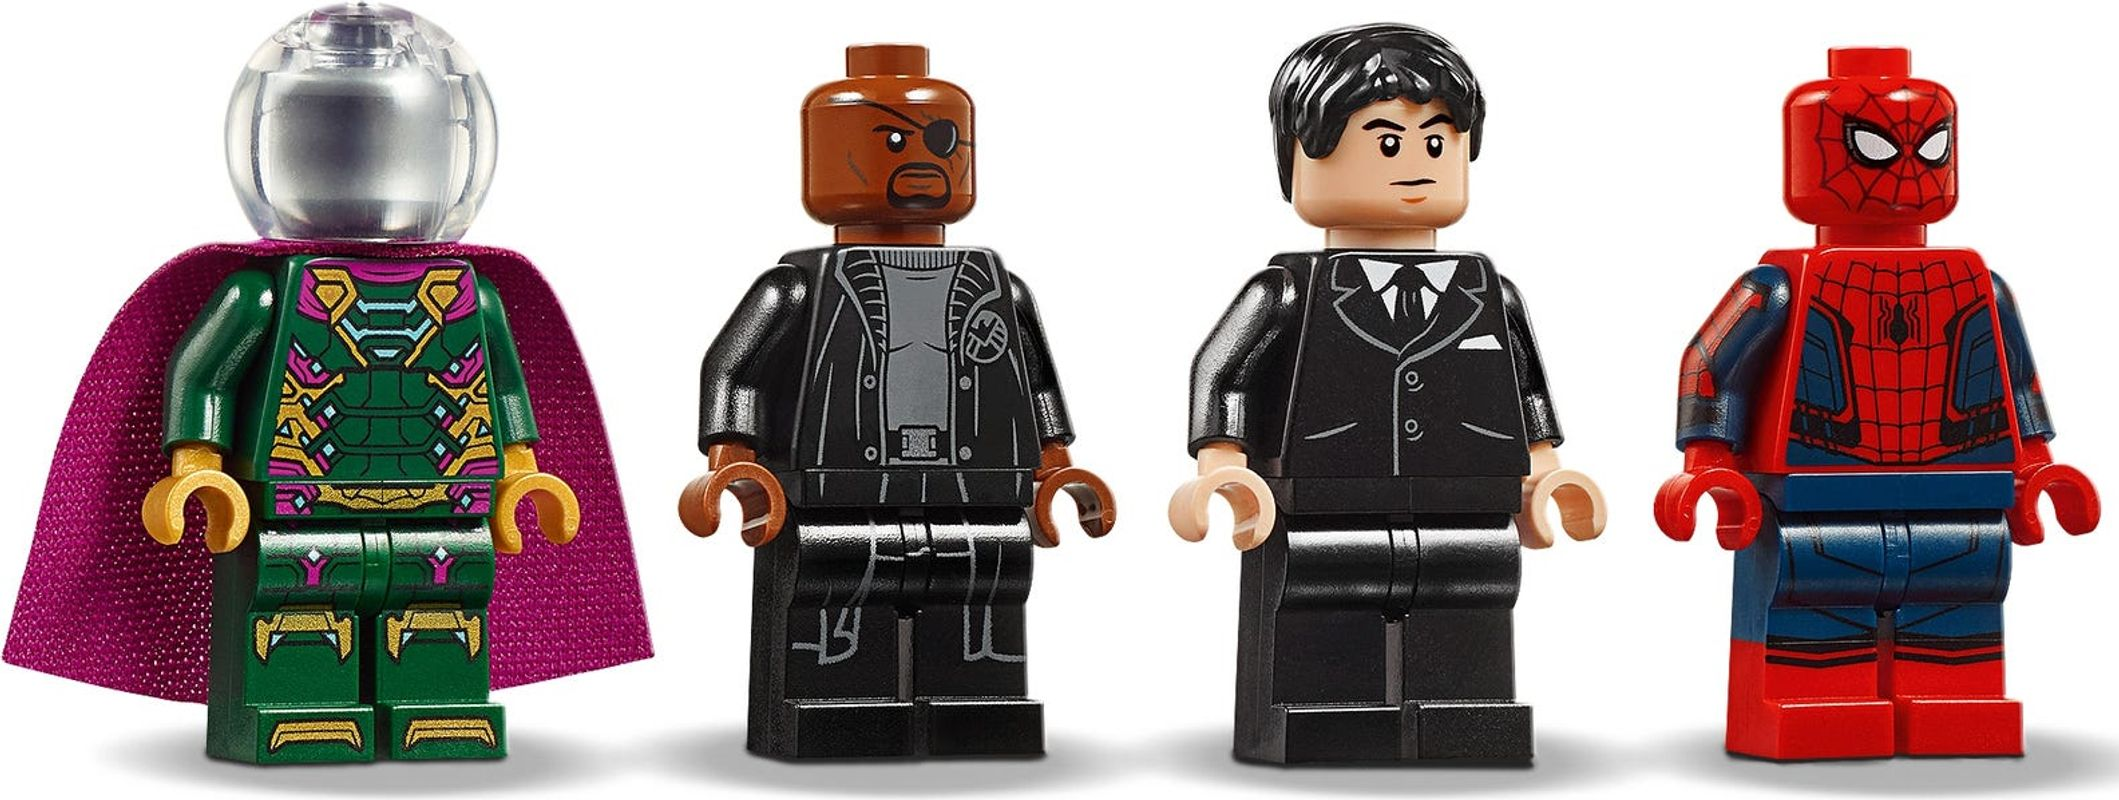 Stark Jet and the Drone Attack minifigures